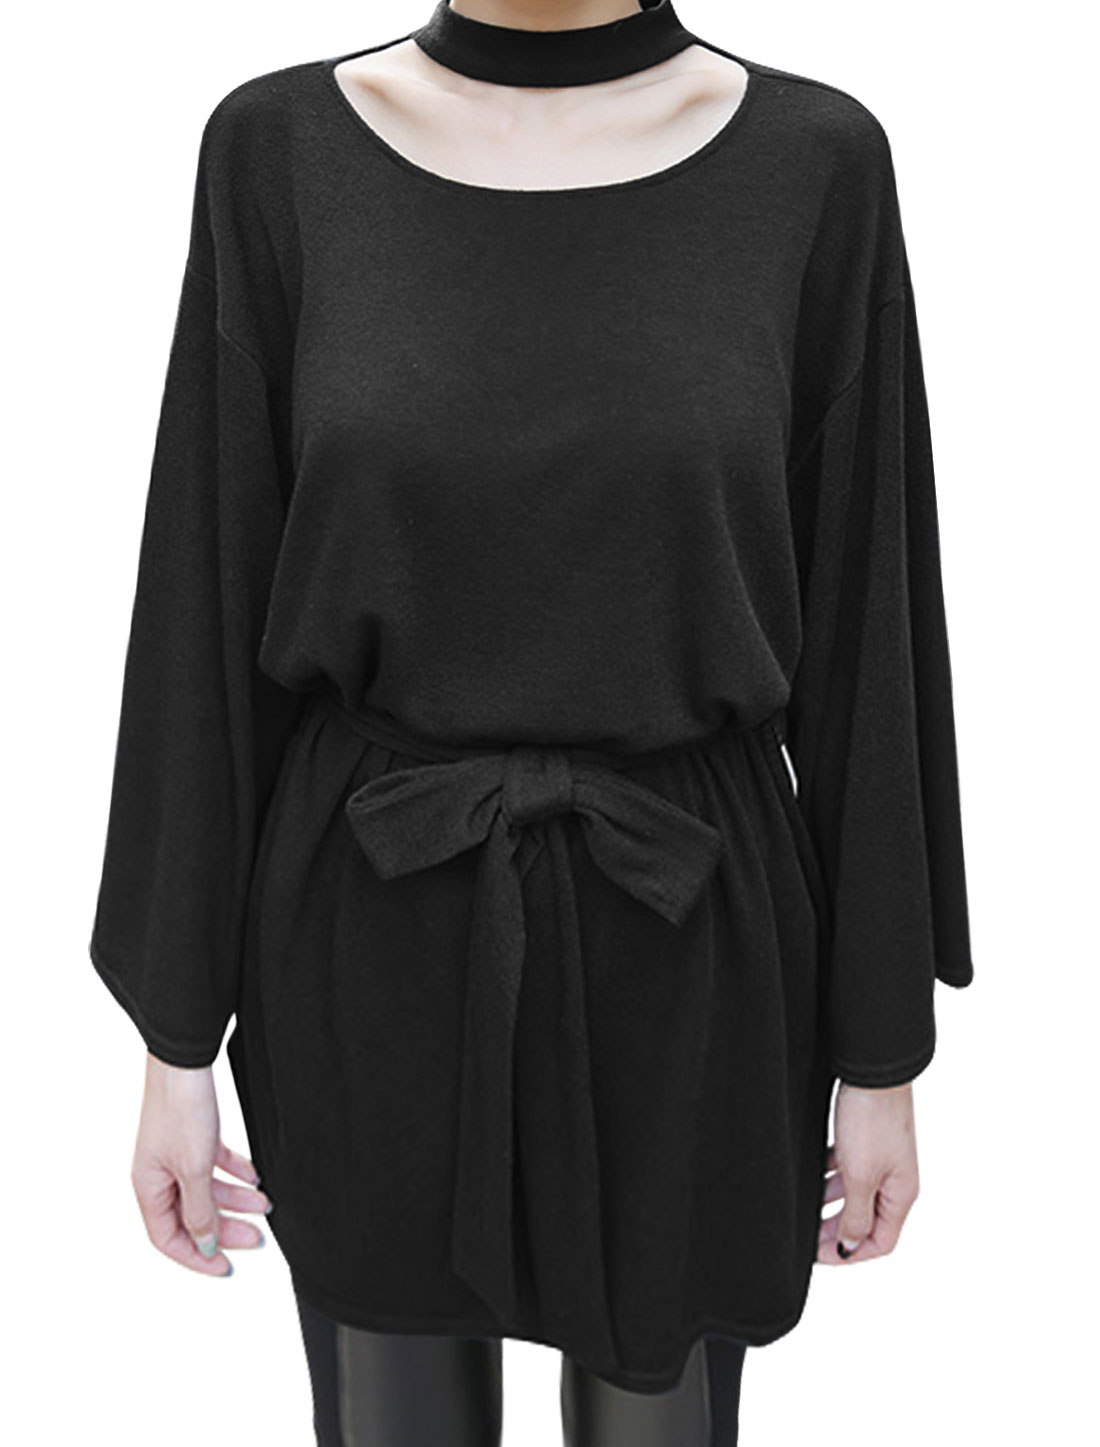 Woman Stand Collar Cut Out Front Tunic Top w Waist String Black S